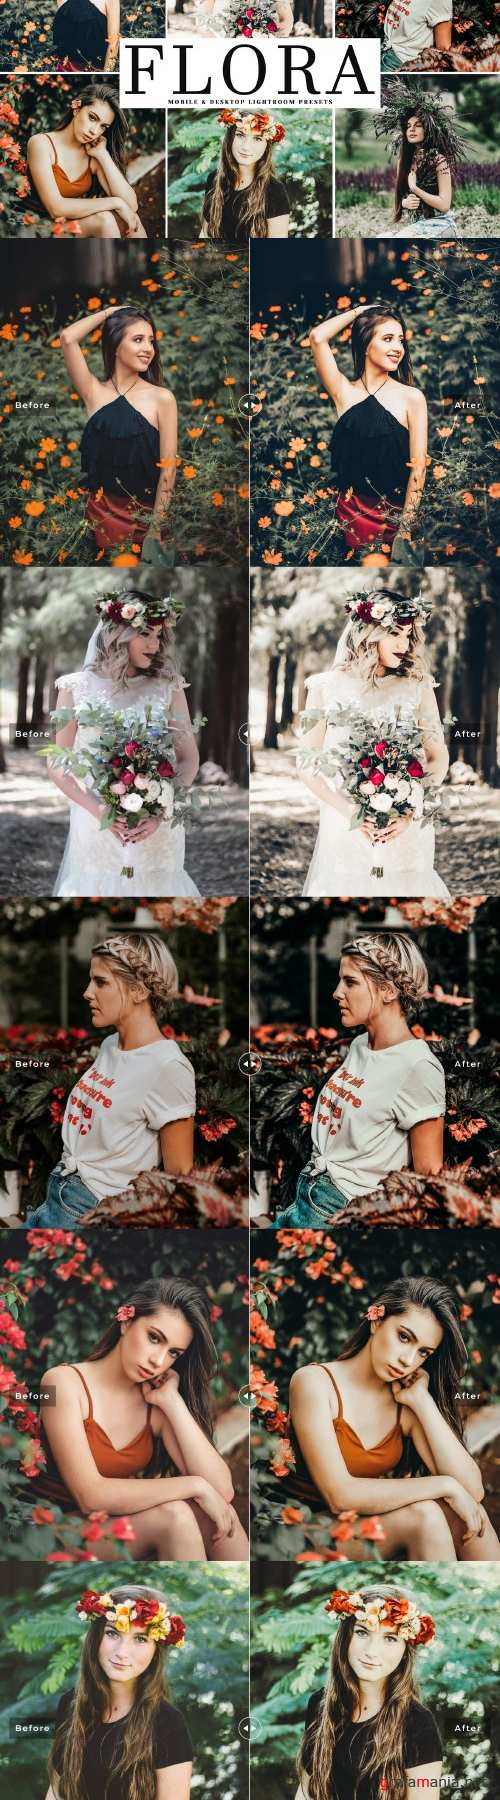 Flora Lightroom Presets Pack - 4048685